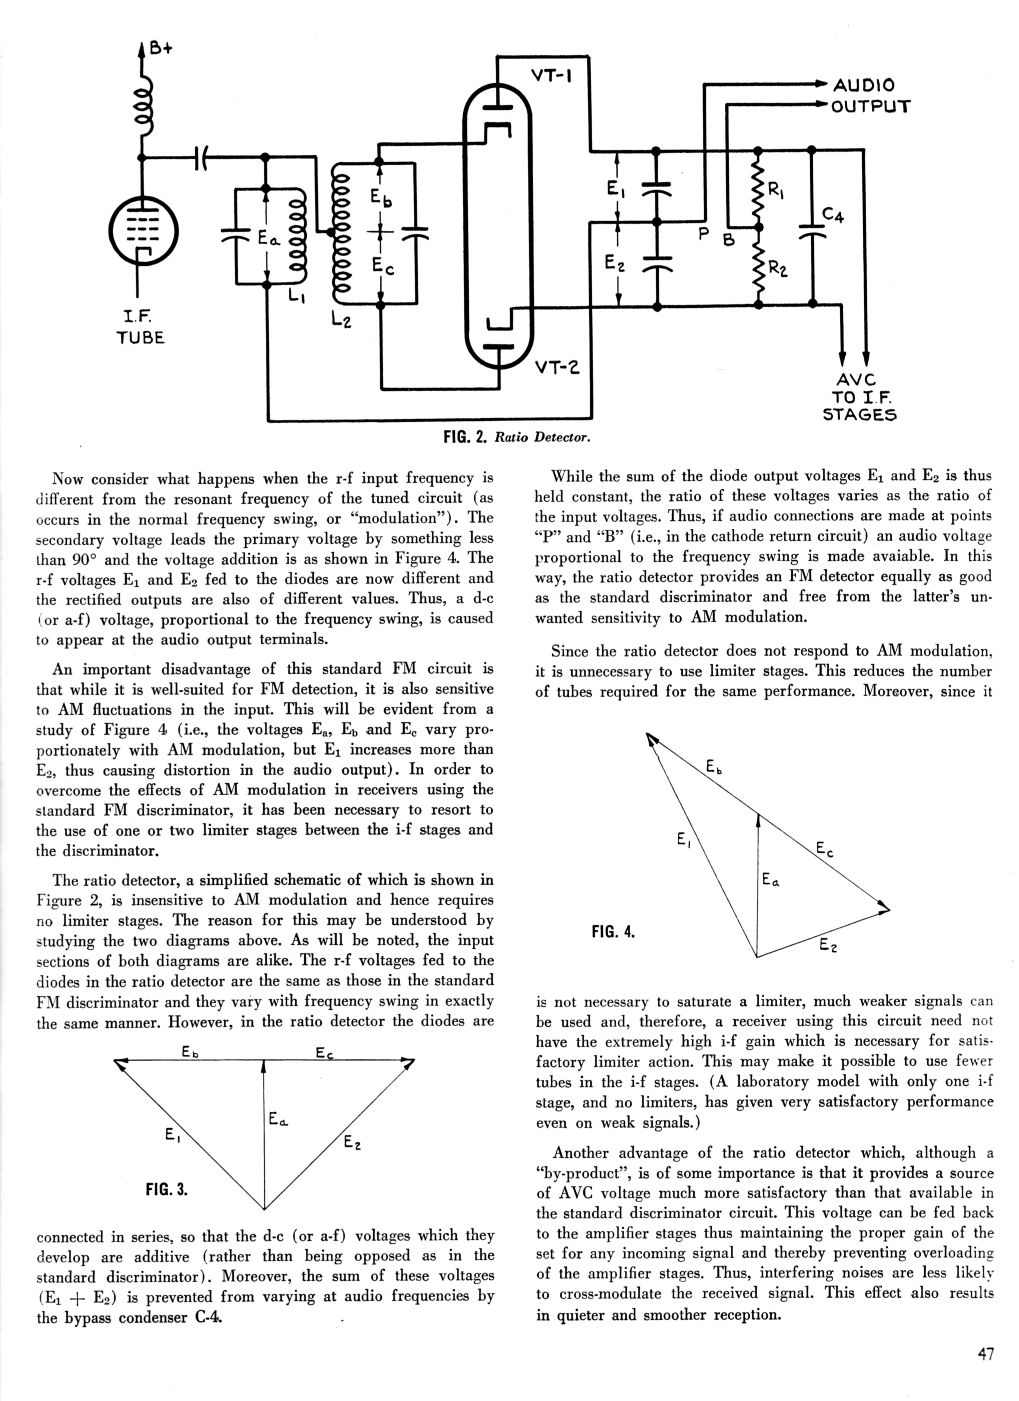 Ratio Detector Simplifies FM Receiver Design, page 2